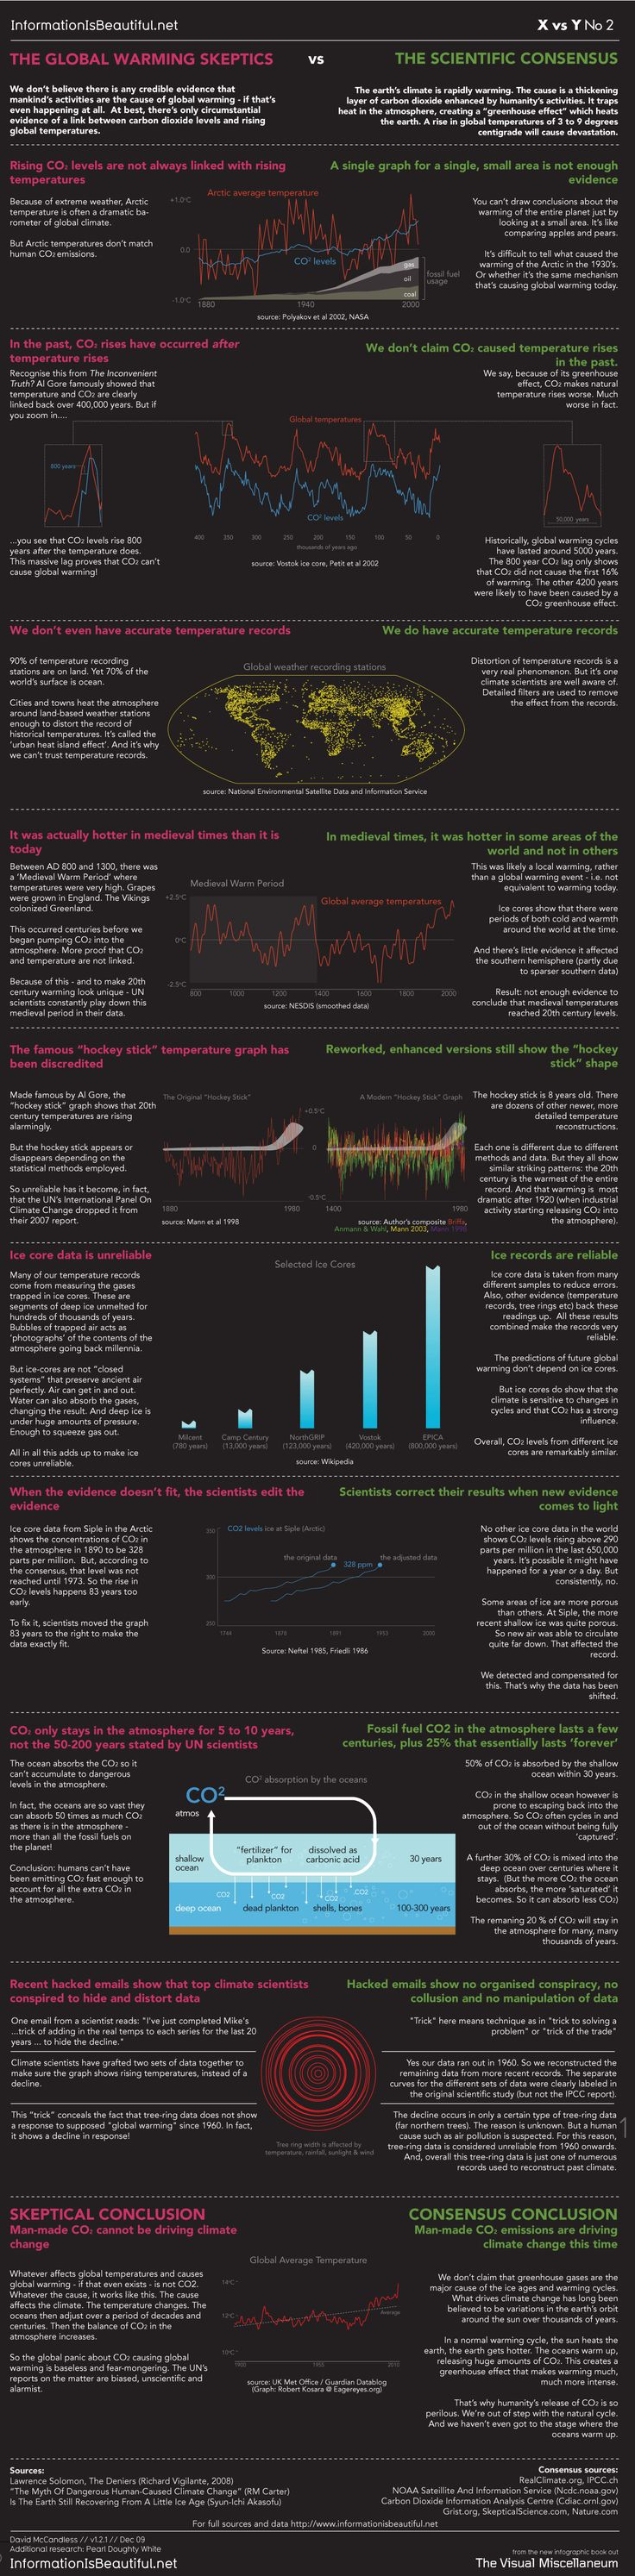 Get Climate - Smart: Global Warming Scientific Consensus VS Skeptics (Deniers) and Faulty Logic in one great visual!